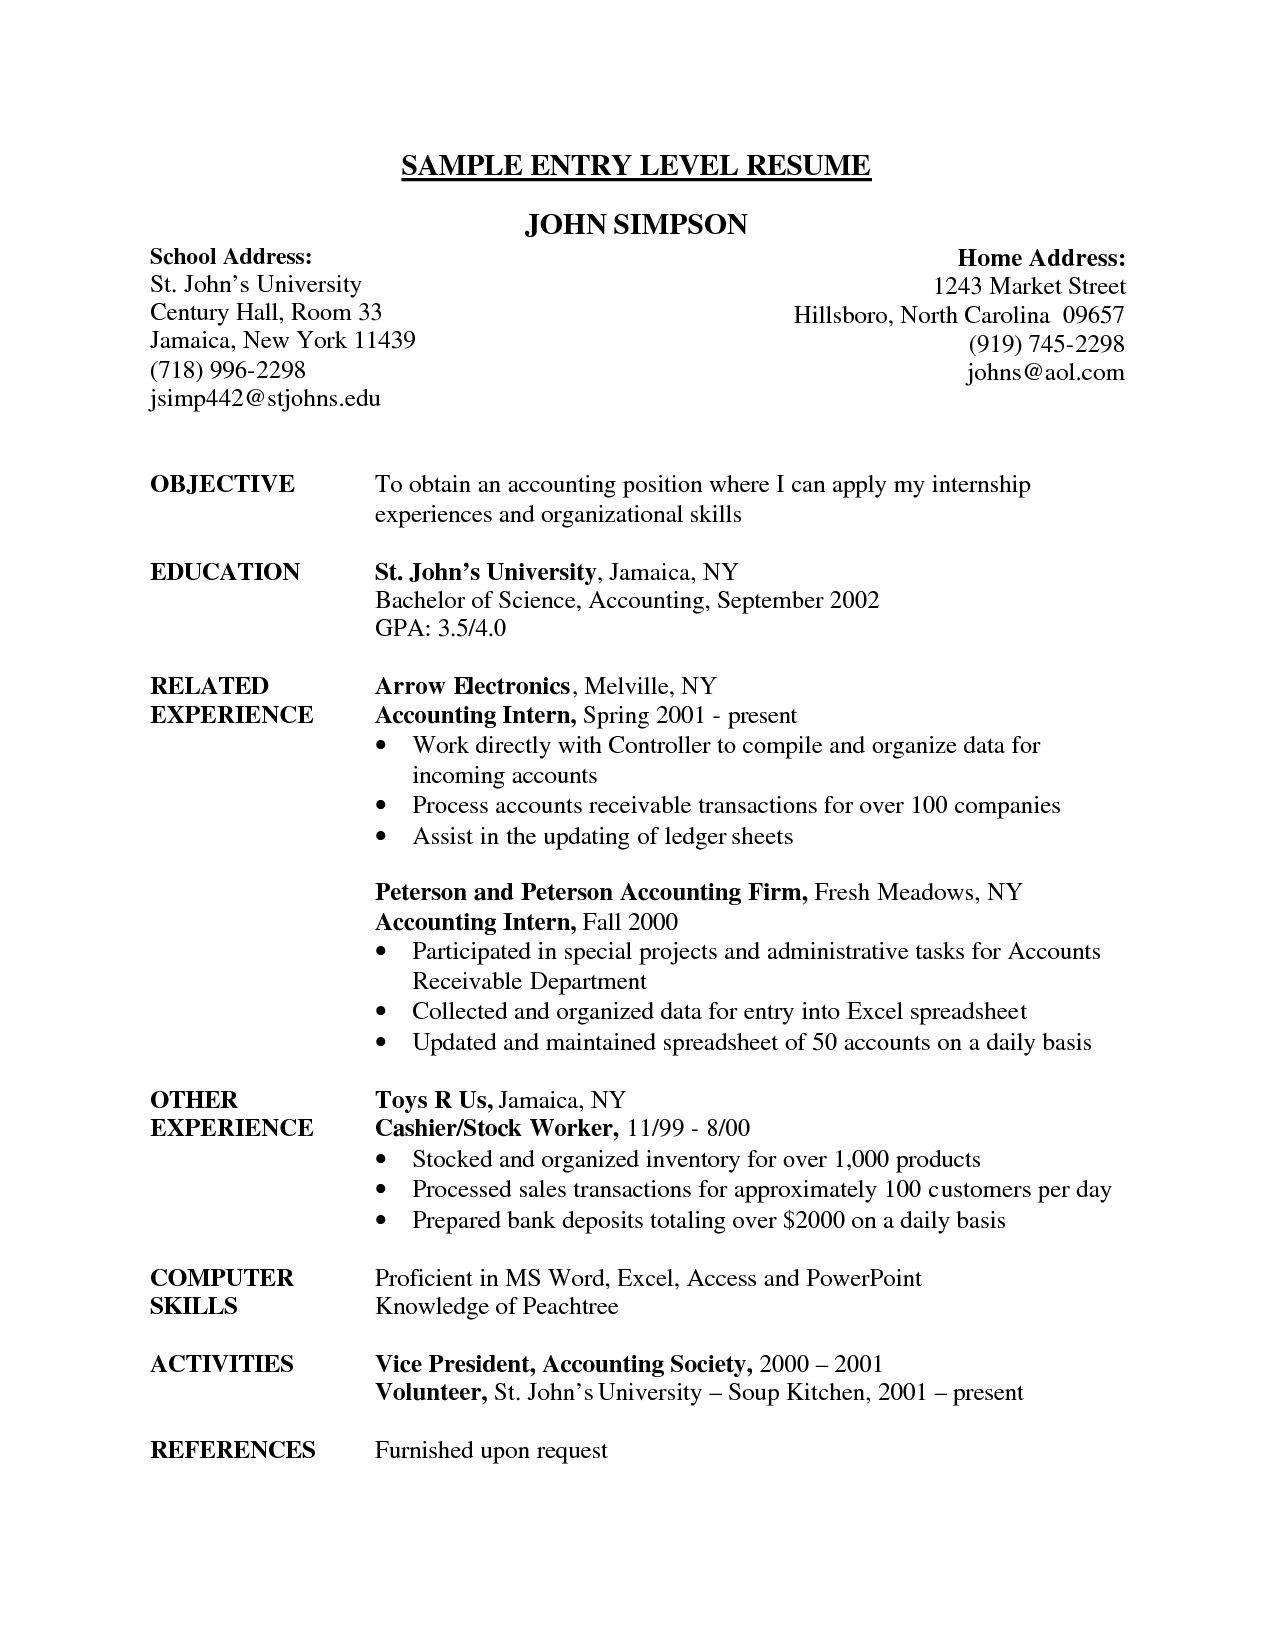 Resume Examples Entry Level ResumeExamples